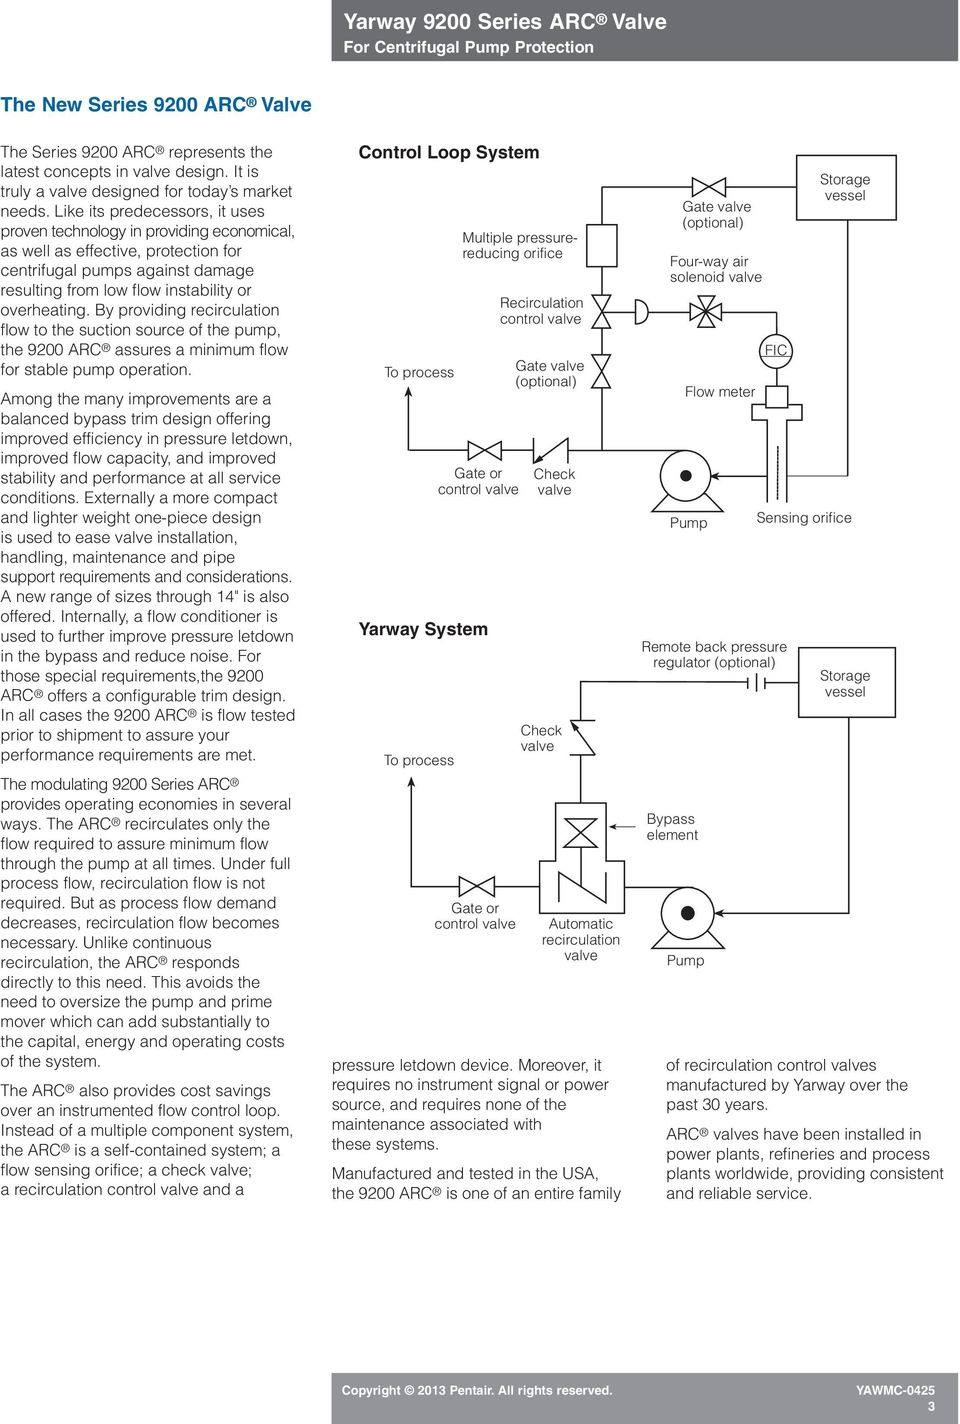 Self Contained Valve Functions As Integral Check Flow Sensing Taco Zone Wiring Diagram Sentinal By Providing Recirculation To The Suction Source Of Pump 9200 Arc Assures